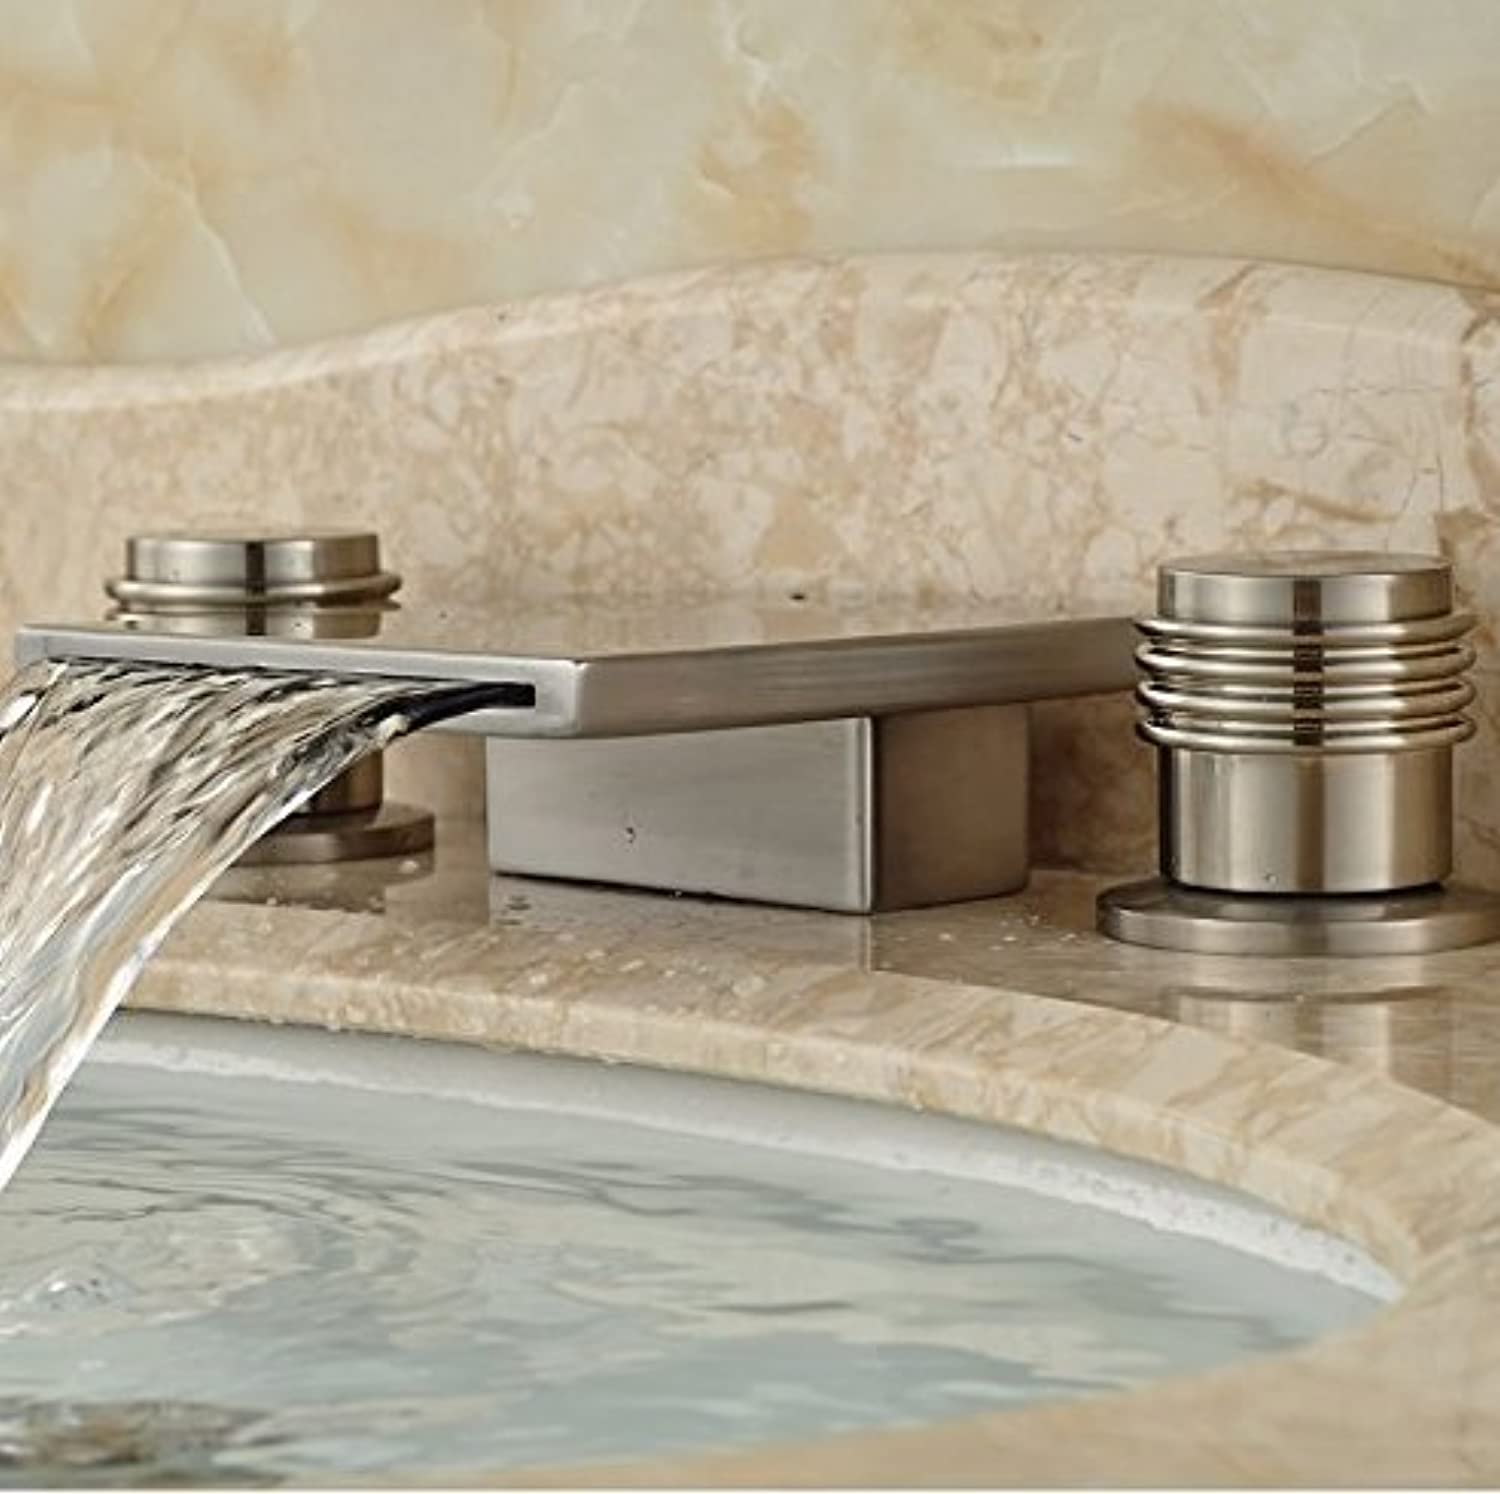 Washbasin Mixer Tap Waterfall Spout Basin Vessel Sink Faucet Brushed Nickel Deck Spent Mixer Batteries Mounted